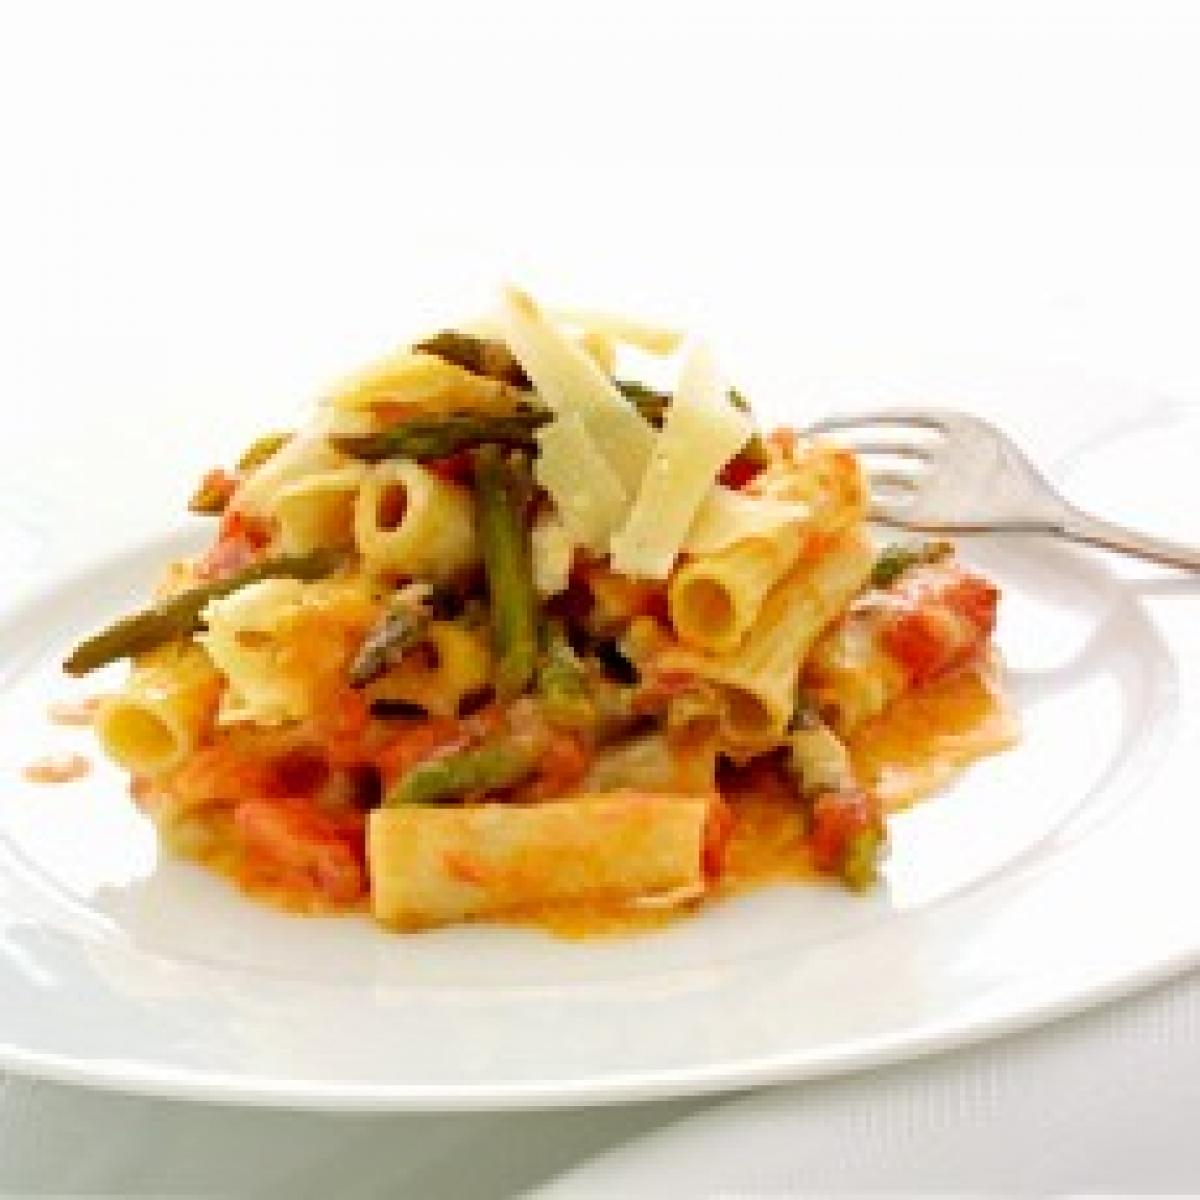 A picture of Delia's Rigatoni and Asparagus au Gratin recipe